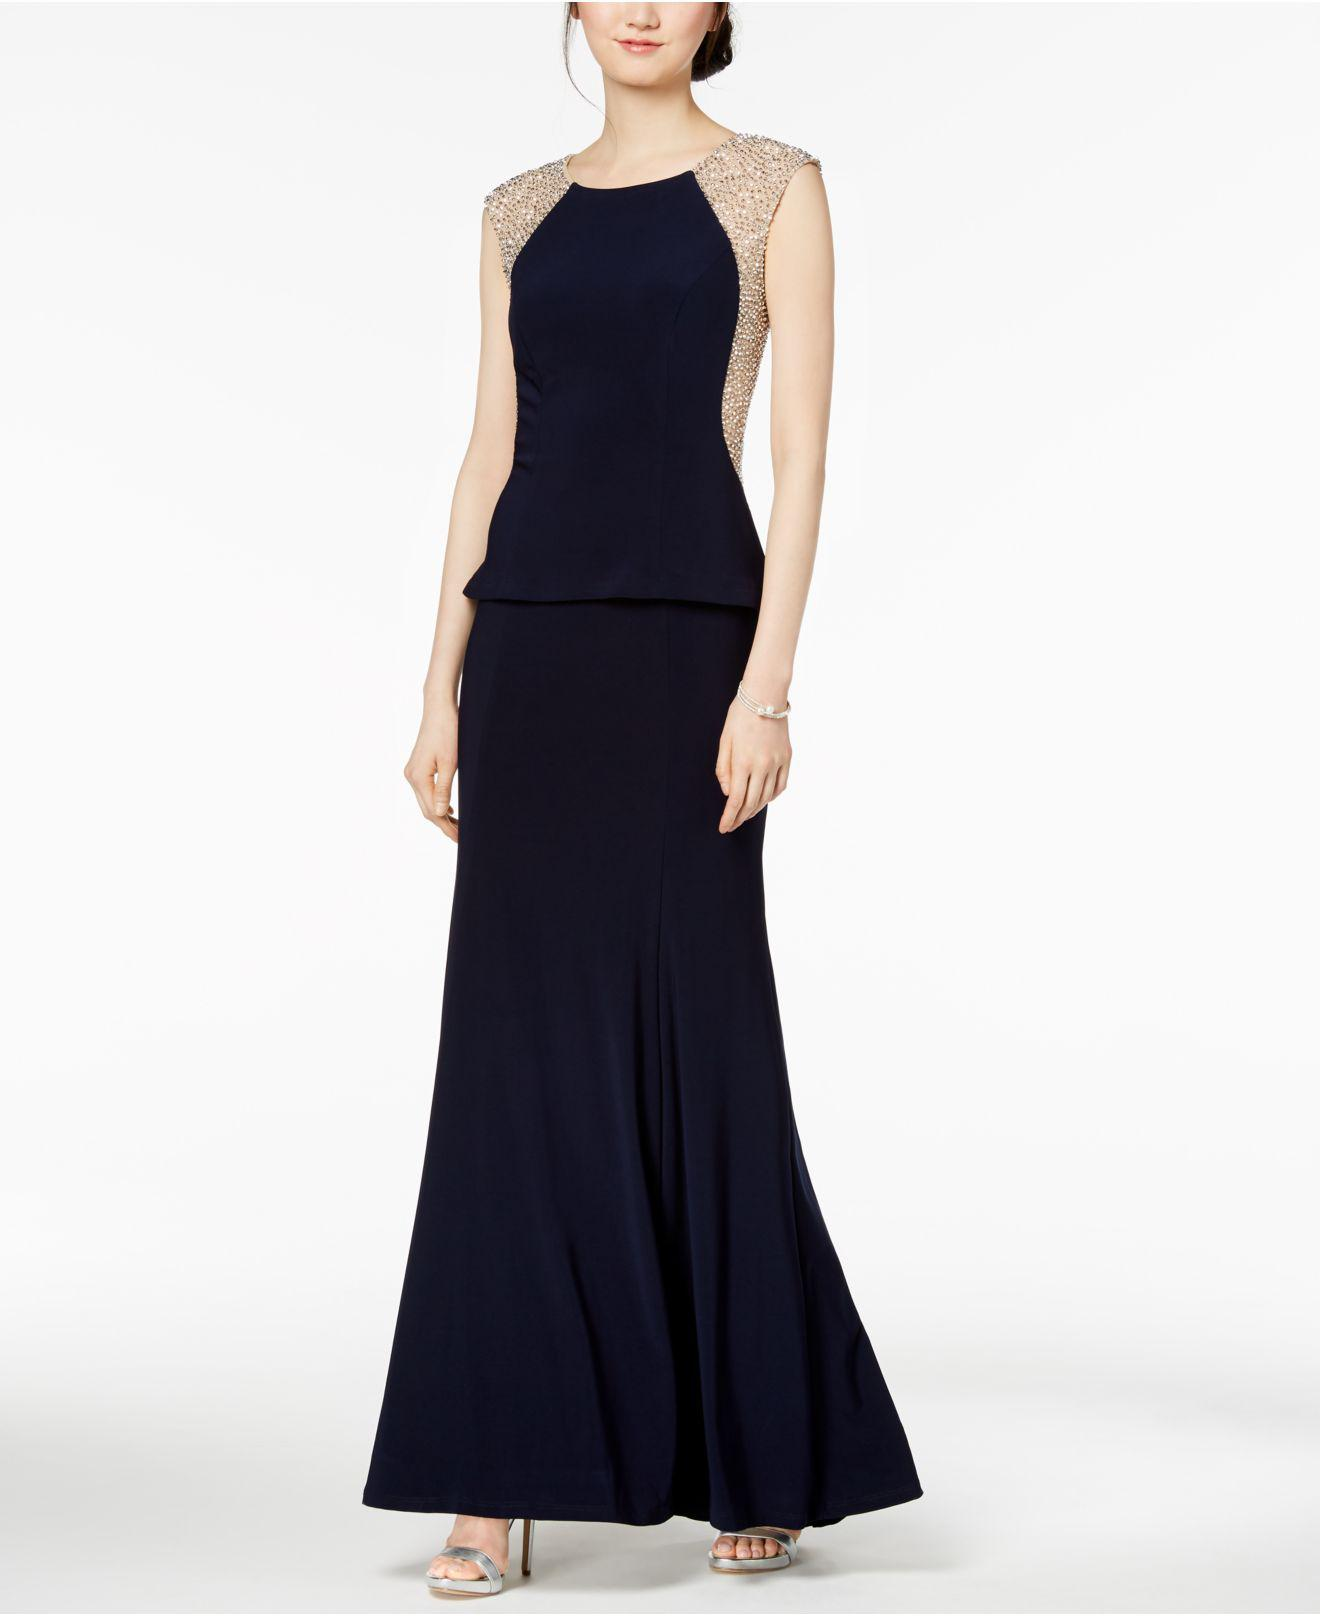 Lyst - Xscape Beaded Illusion Peplum-detail Gown in Blue